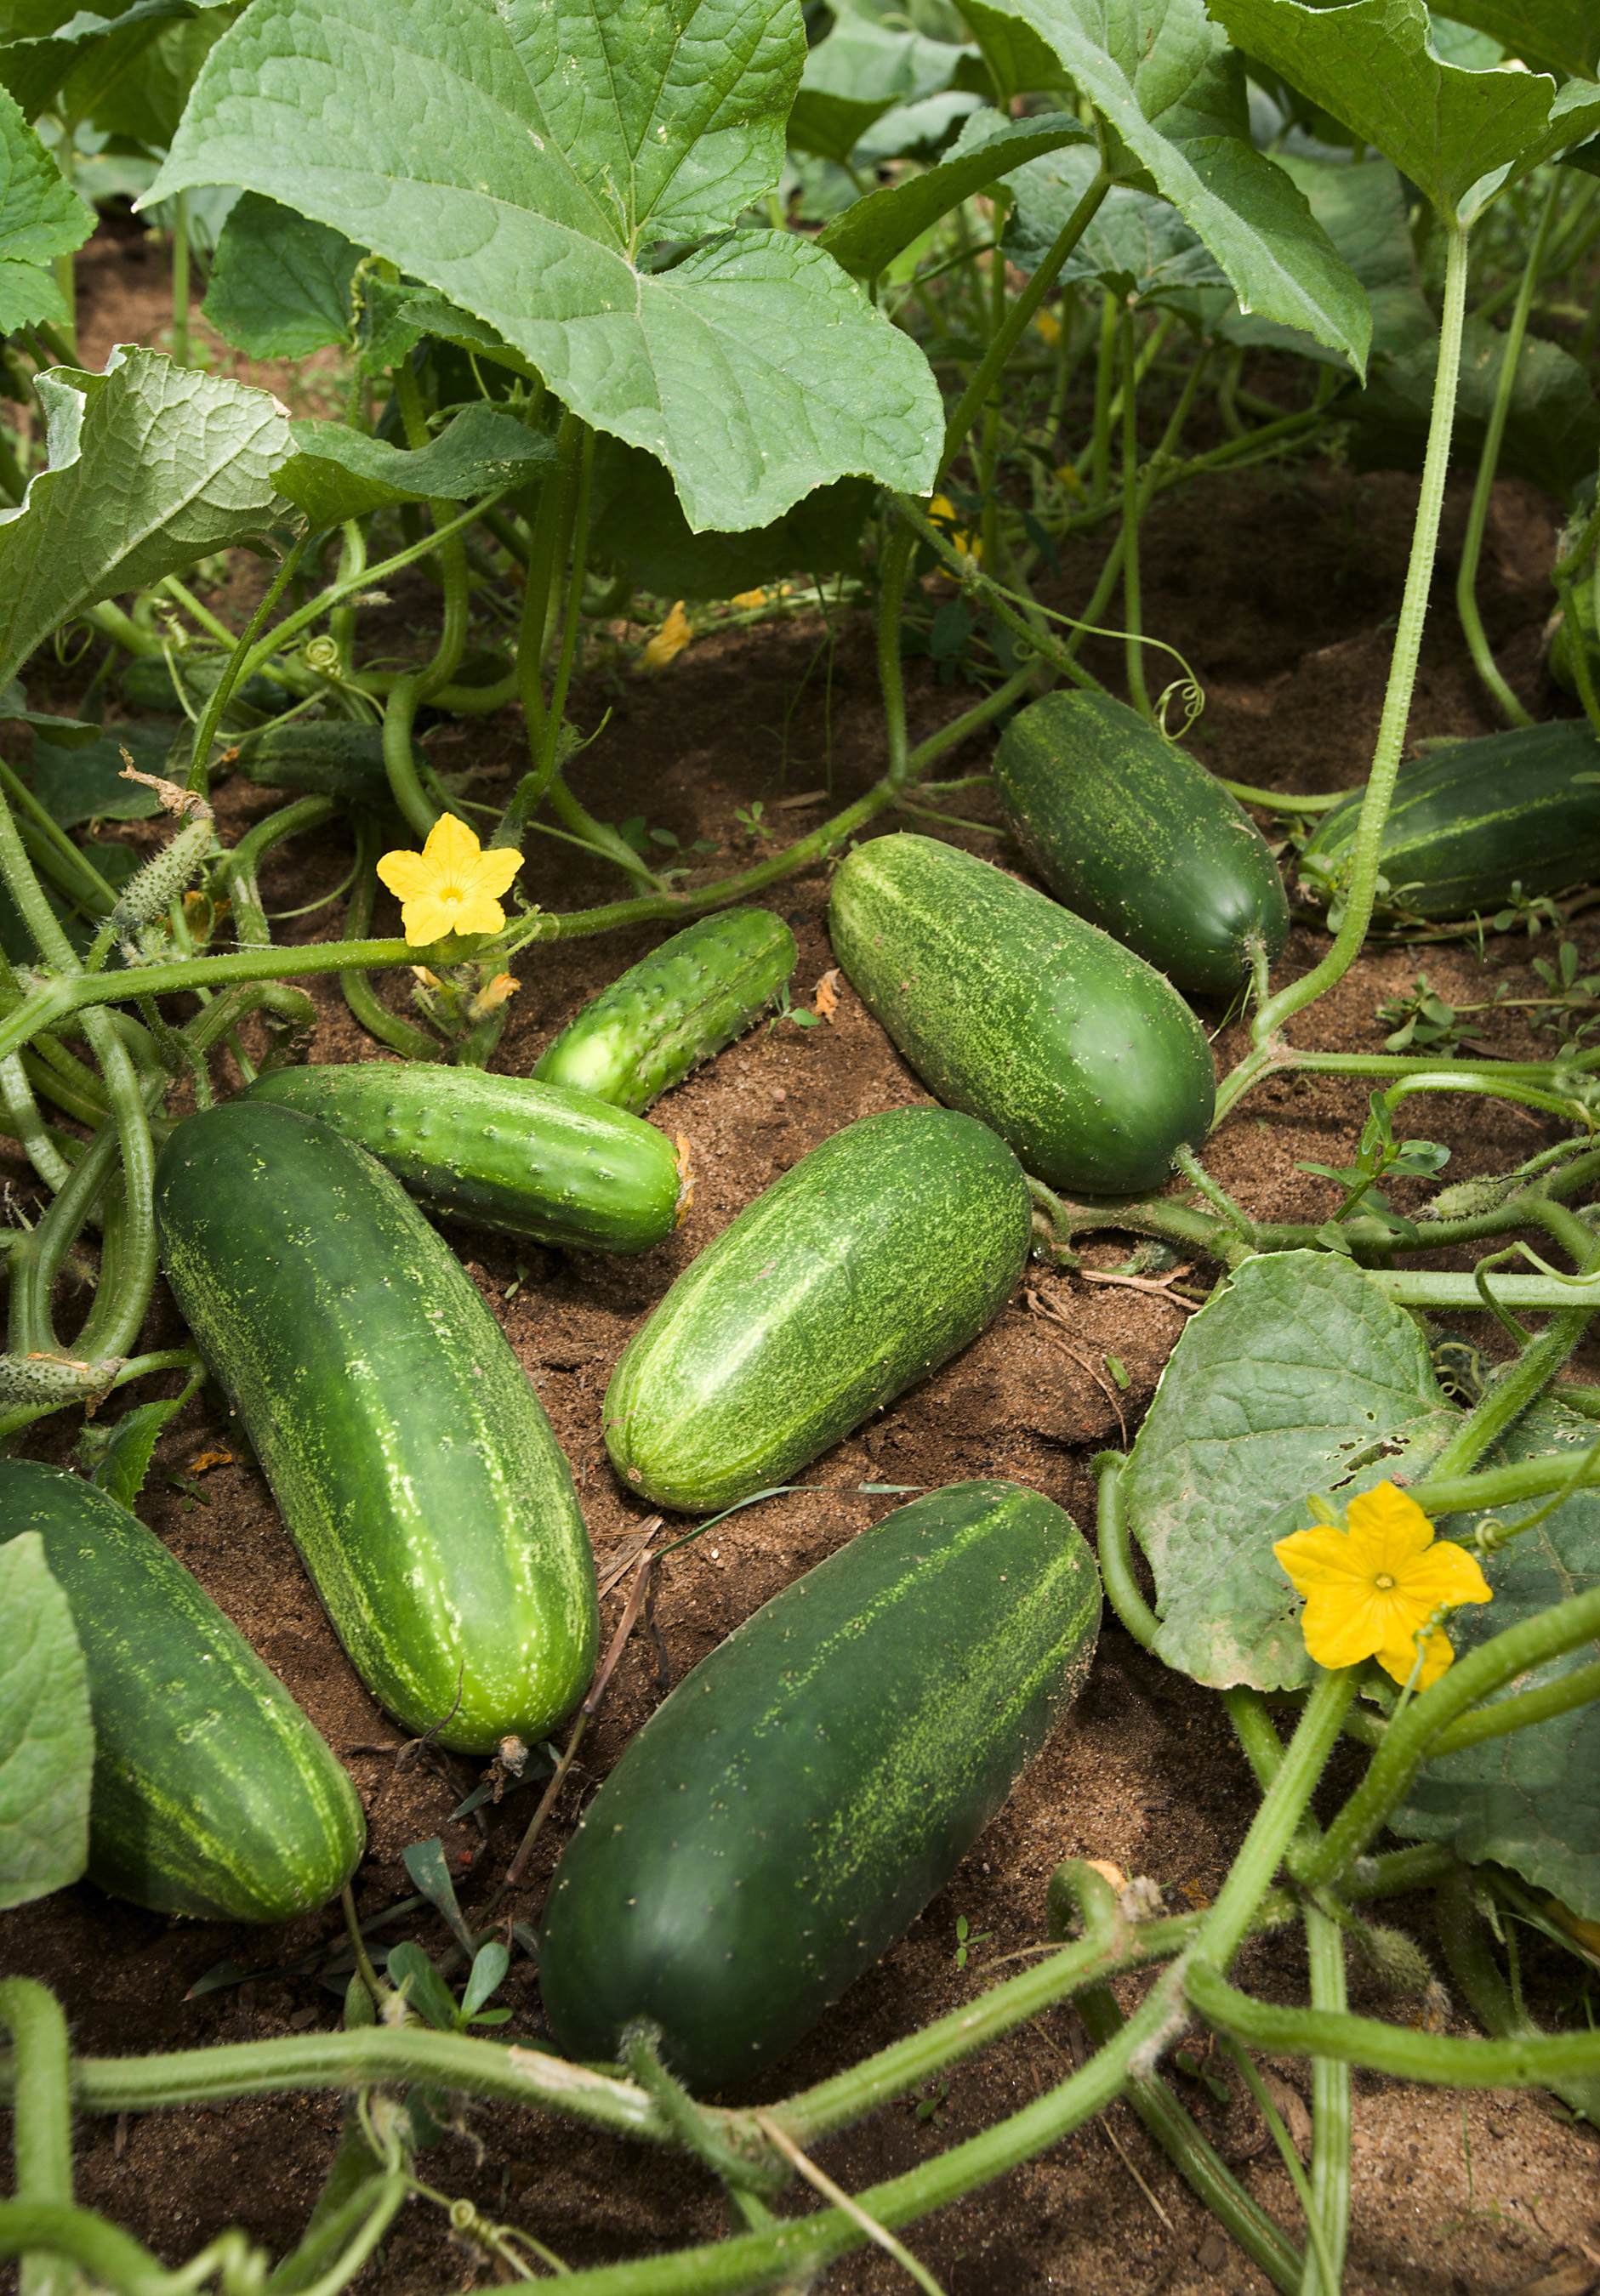 How to Use Cucumbers in the Home, the Garden, for your Health and ...